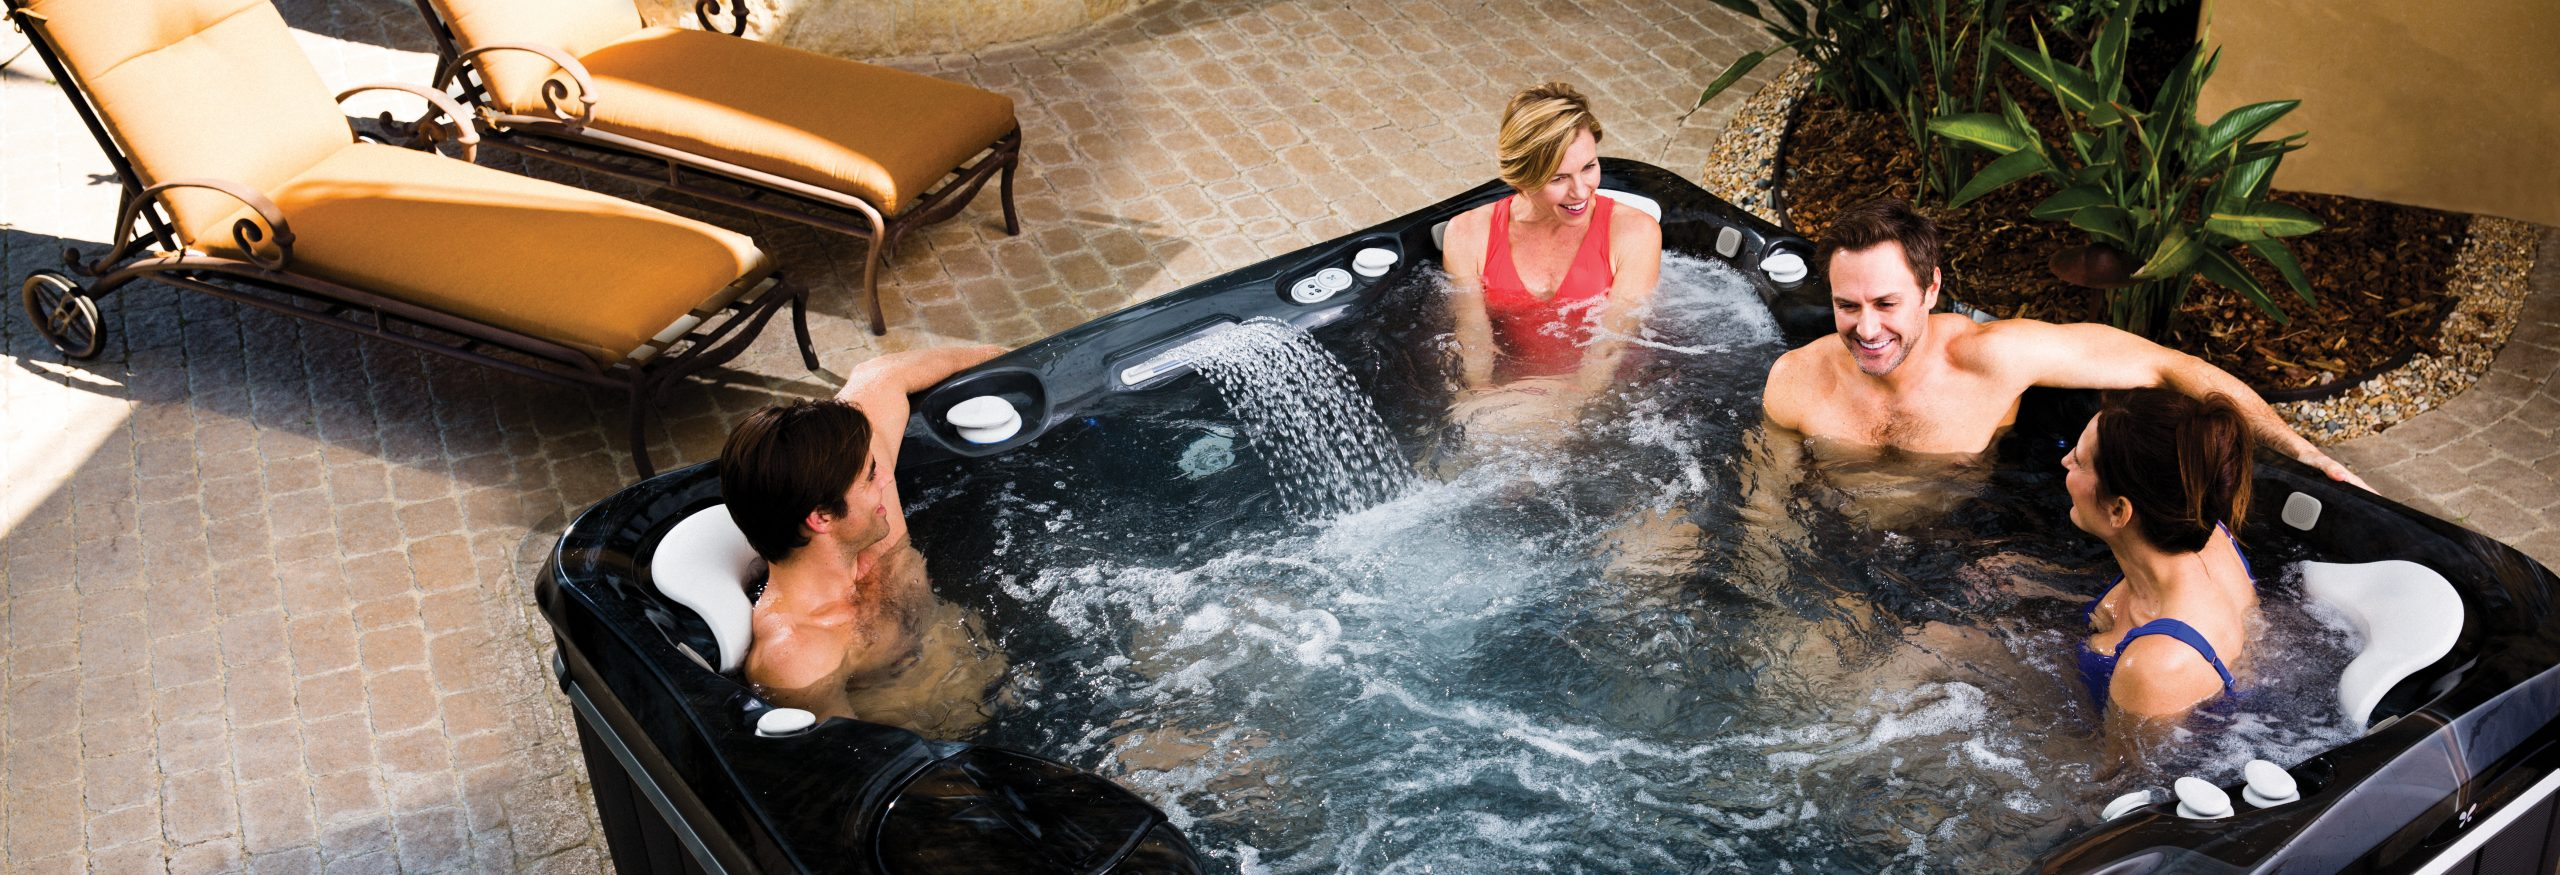 Do More Of What You Love in a Hot Tub